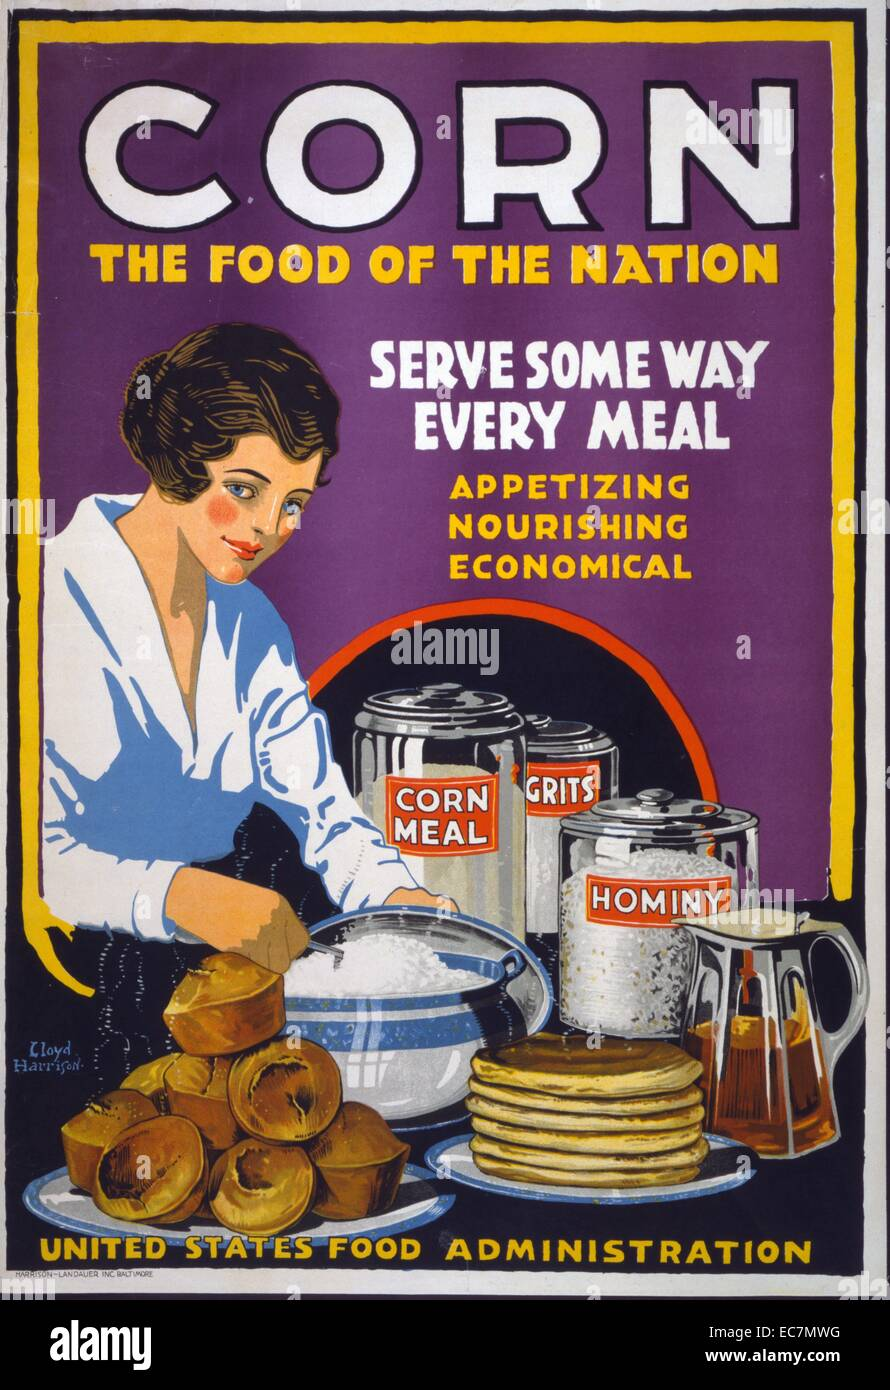 Advertising Poster Encouraging Americans To Eat More Corn The Food Of The  Nation, Serve How How To Eat Fried Worms